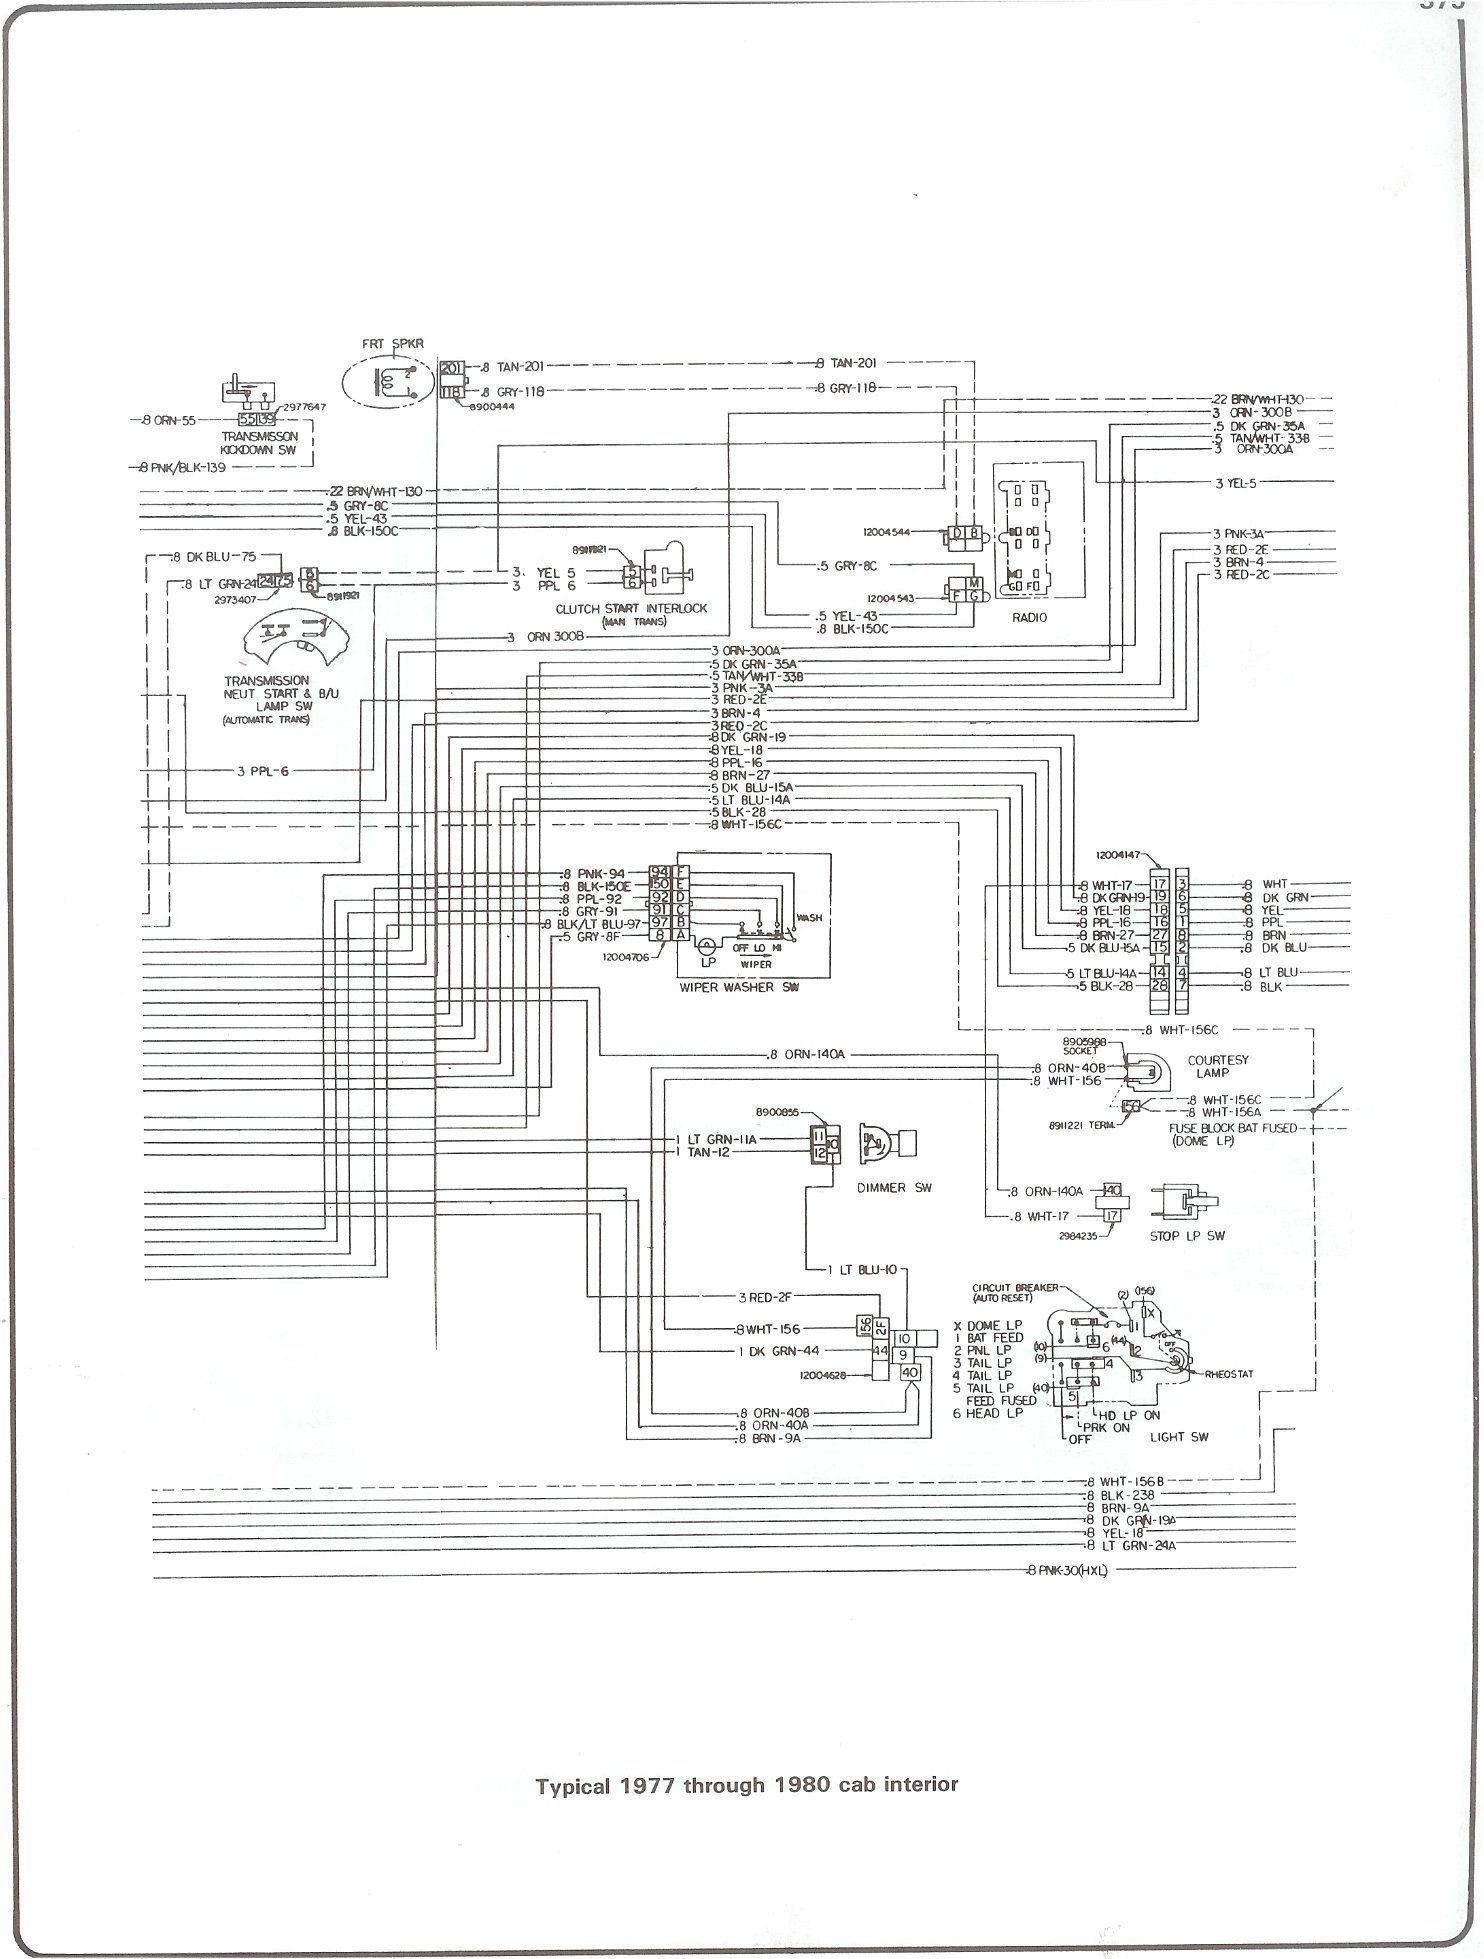 77 80_cab_inter complete 73 87 wiring diagrams 1981 K20 Step Side at panicattacktreatment.co